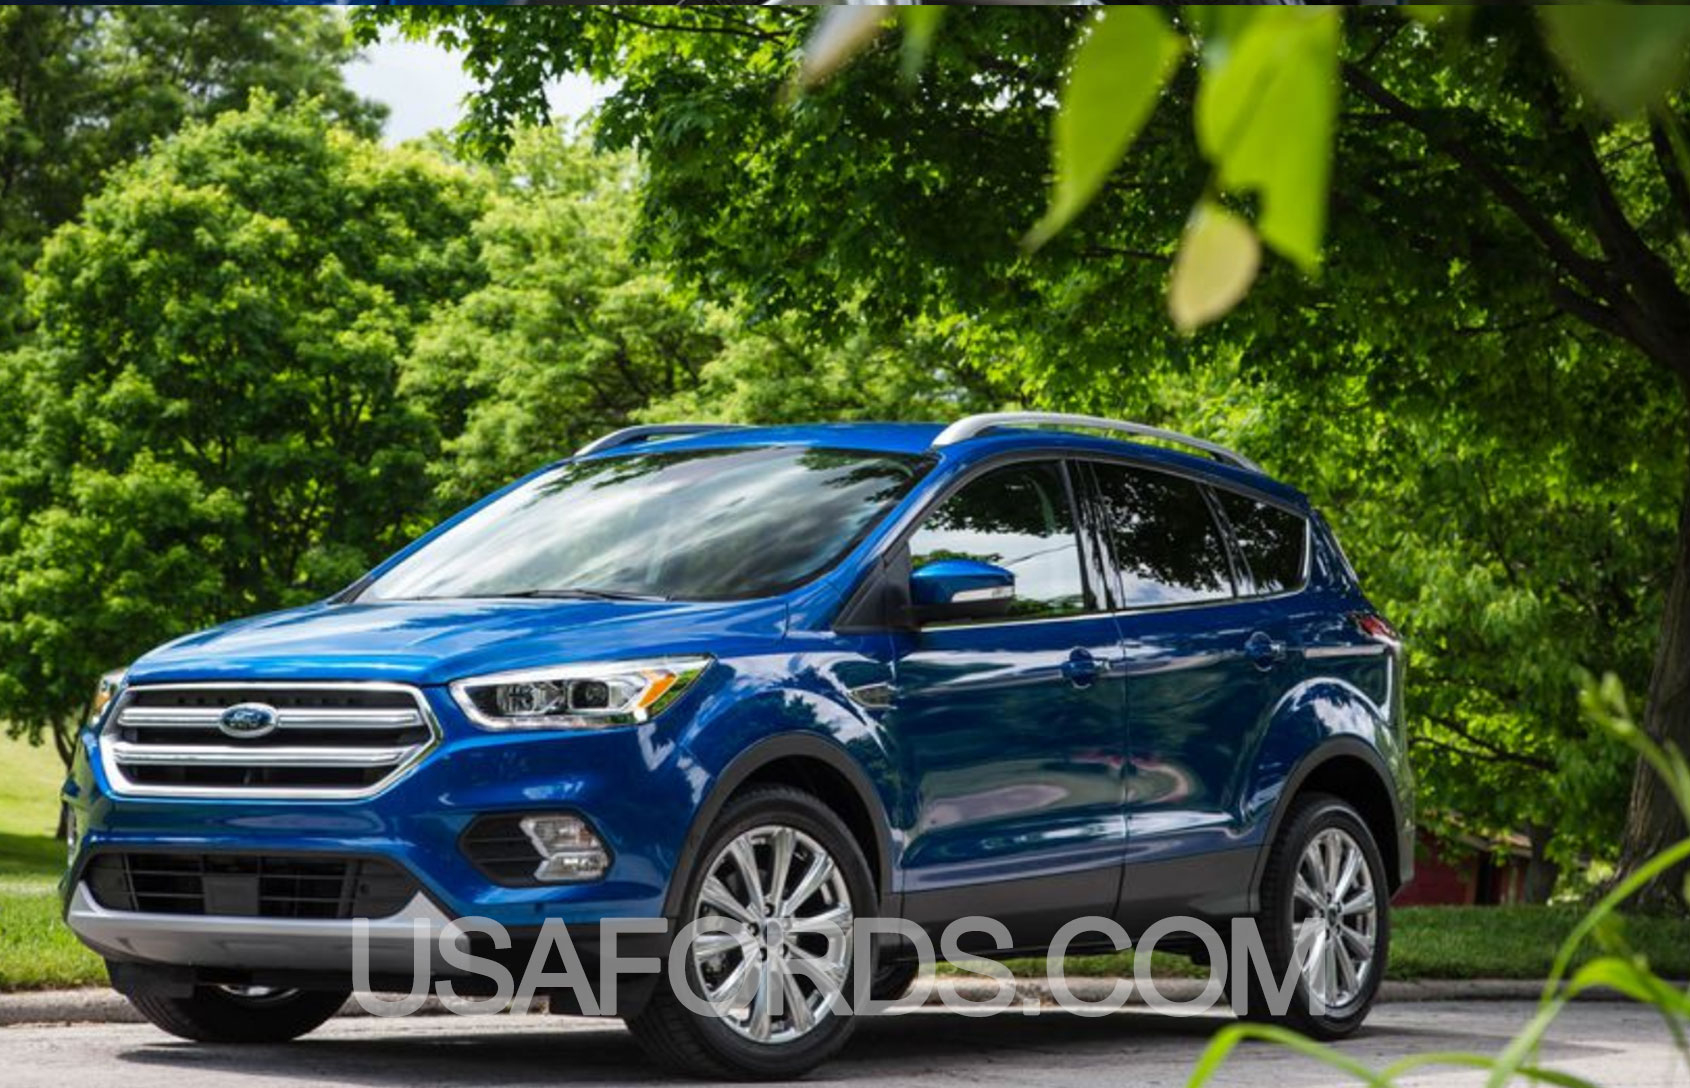 2021 Ford Escape St Line 0-100 | Usa Fords Car